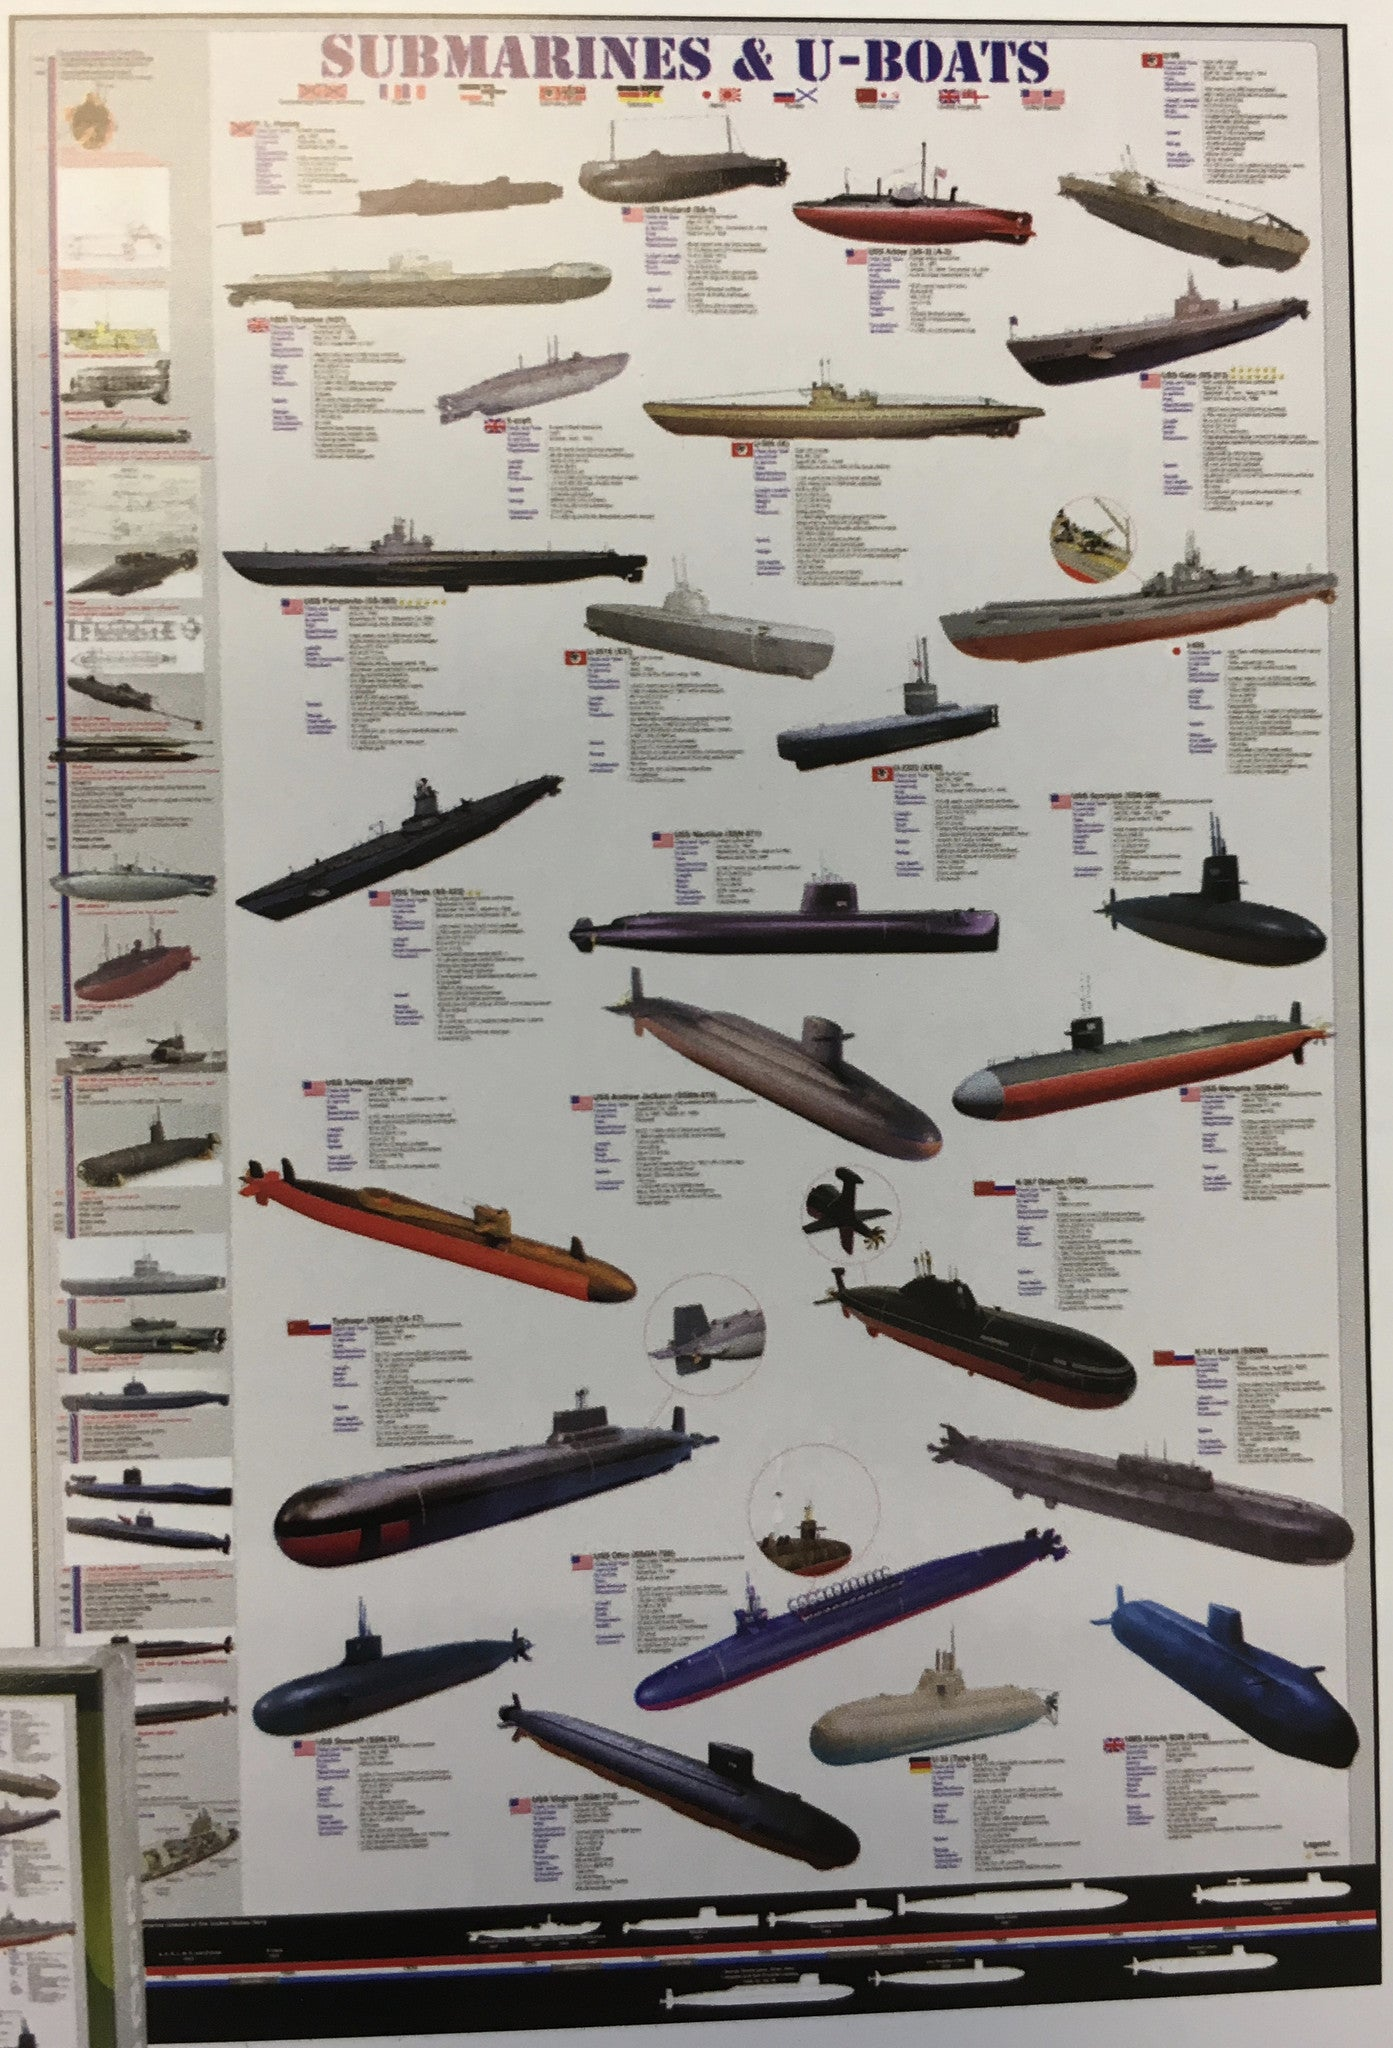 Submarines & UBoats Poster